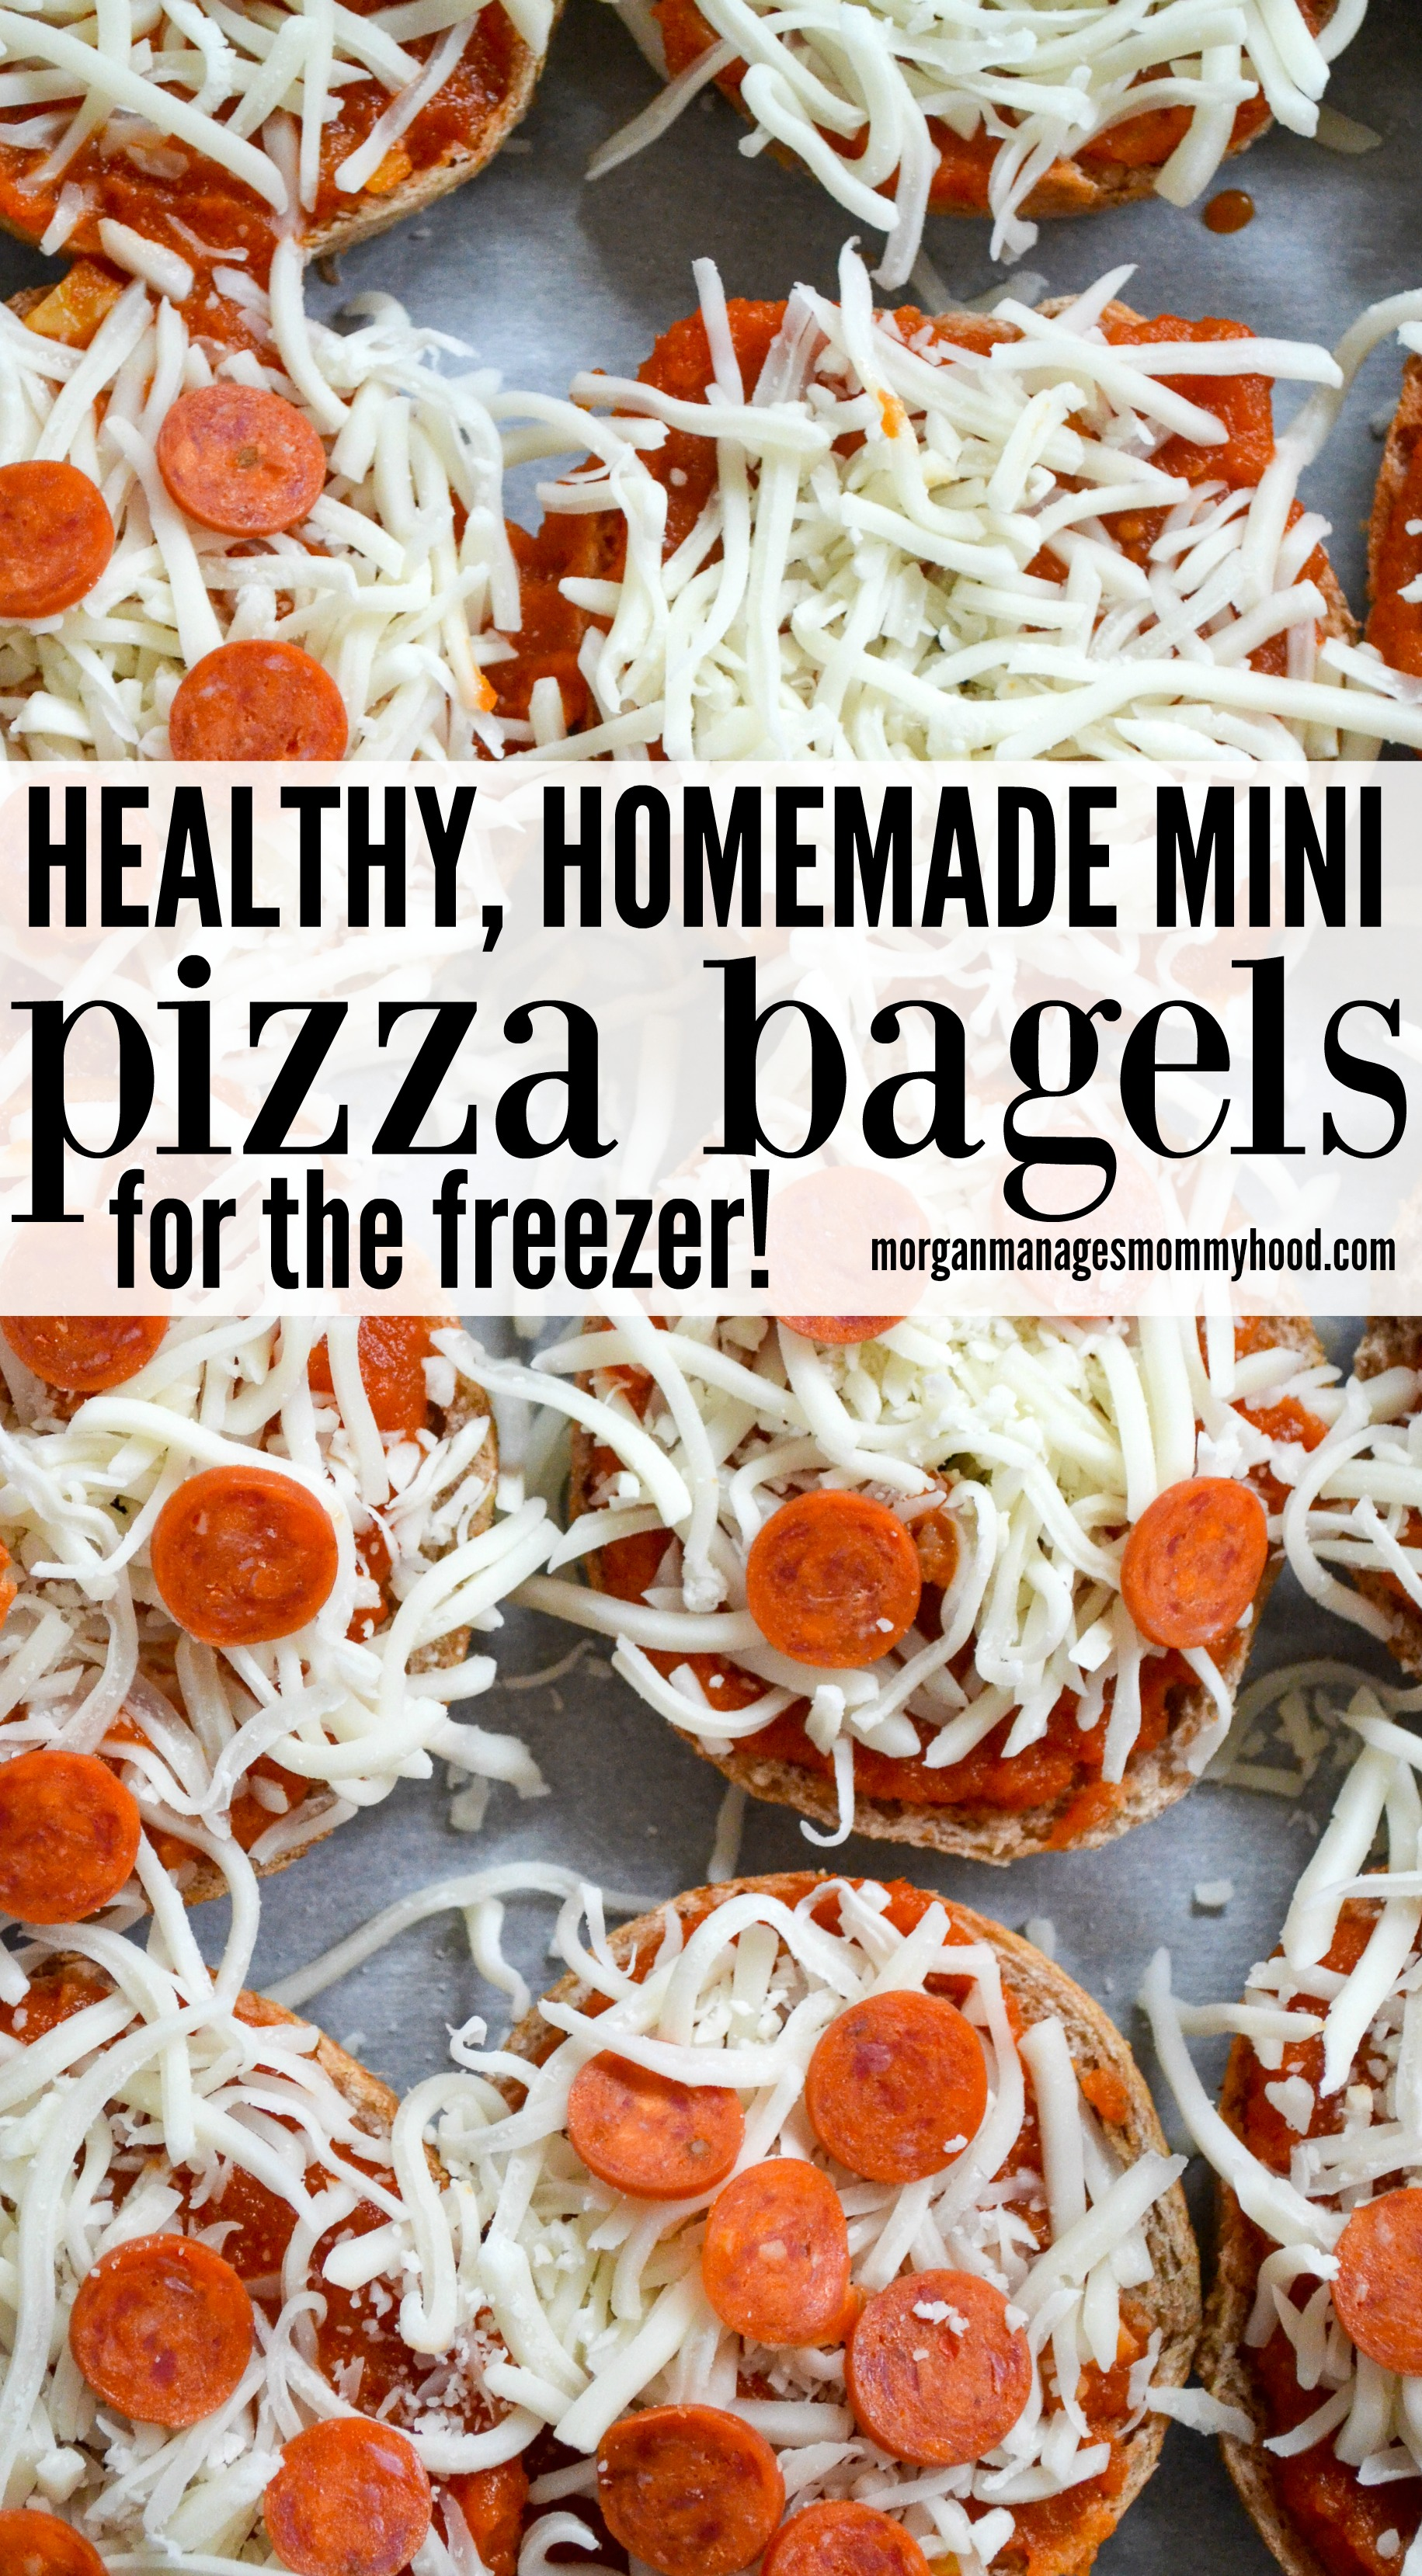 Homemade pizza bagels are the perfect alternative to kid favorite frozen pizza bagels you buy. Customize with your family's favorite toppings, these healthy pizza bagels are a dish you can feel good about giving your kids. #pizza #pizzanight #easydinner #freezermeal #kidfriendly #kidapproved